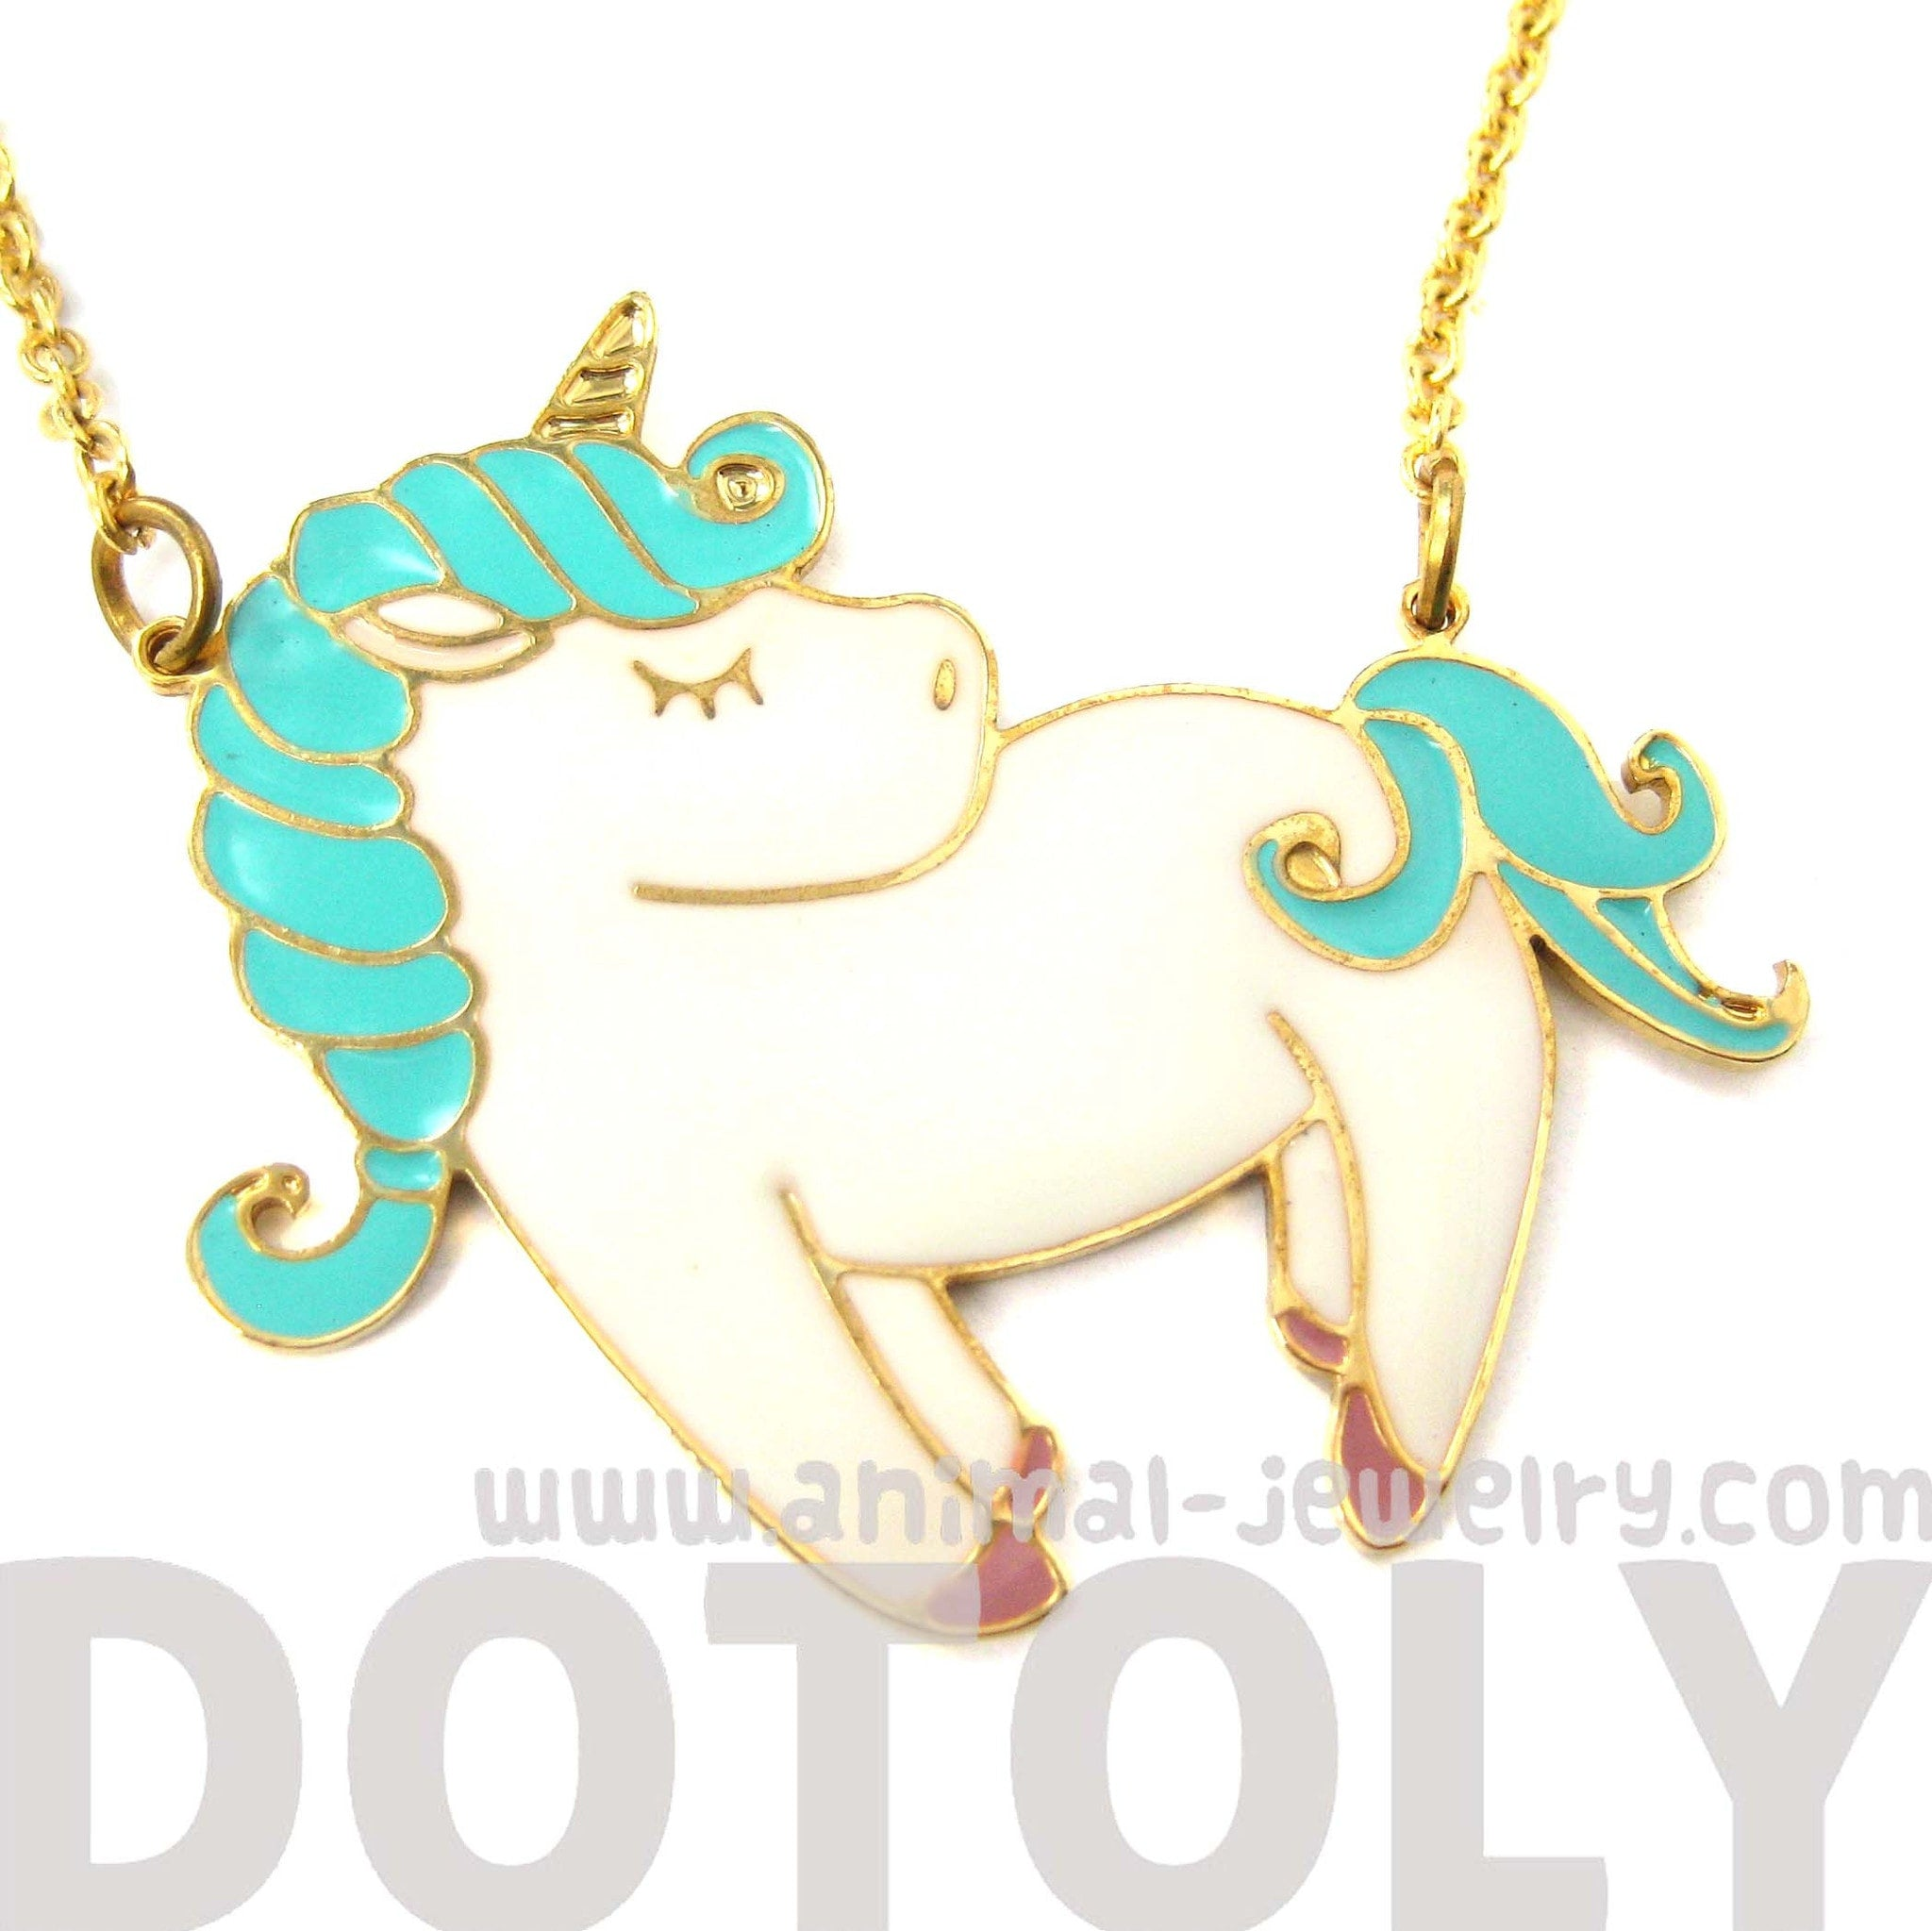 little-pony-horse-shaped-animal-pendant-necklace-in-white-and-turquoise-limited-edition